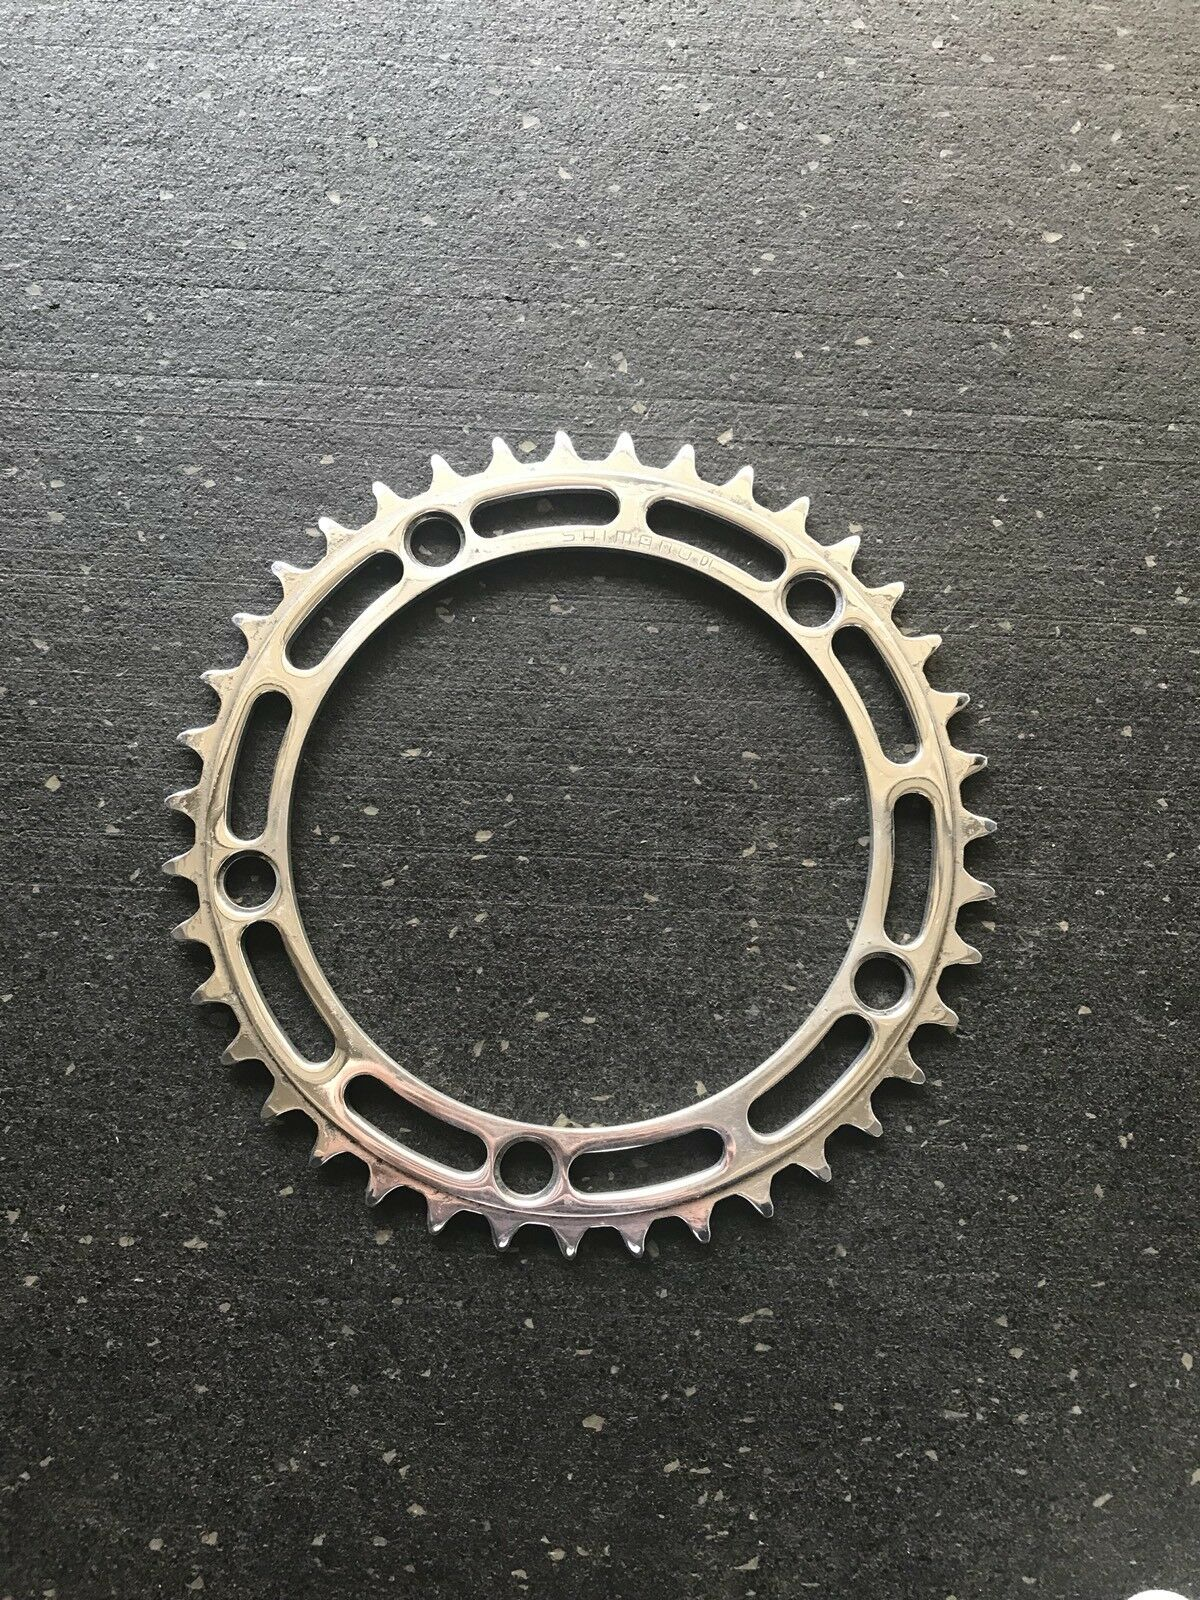 Shimano  39T Chainring Vintage-130BCD